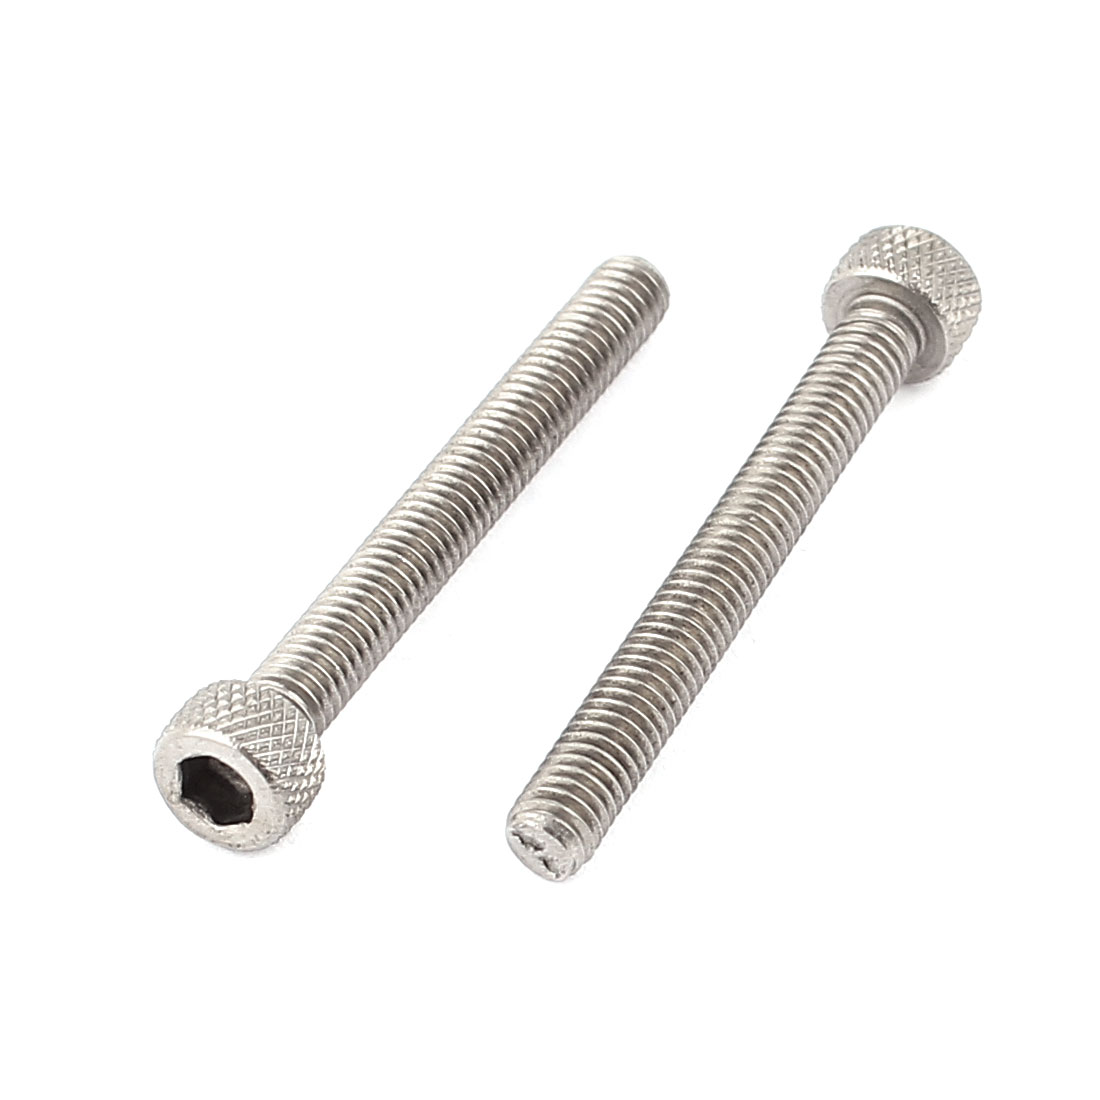 M4 x 35mm 0.7mm Pitch Stainless Steel Hex Head Socket Cap Screws 2pcs